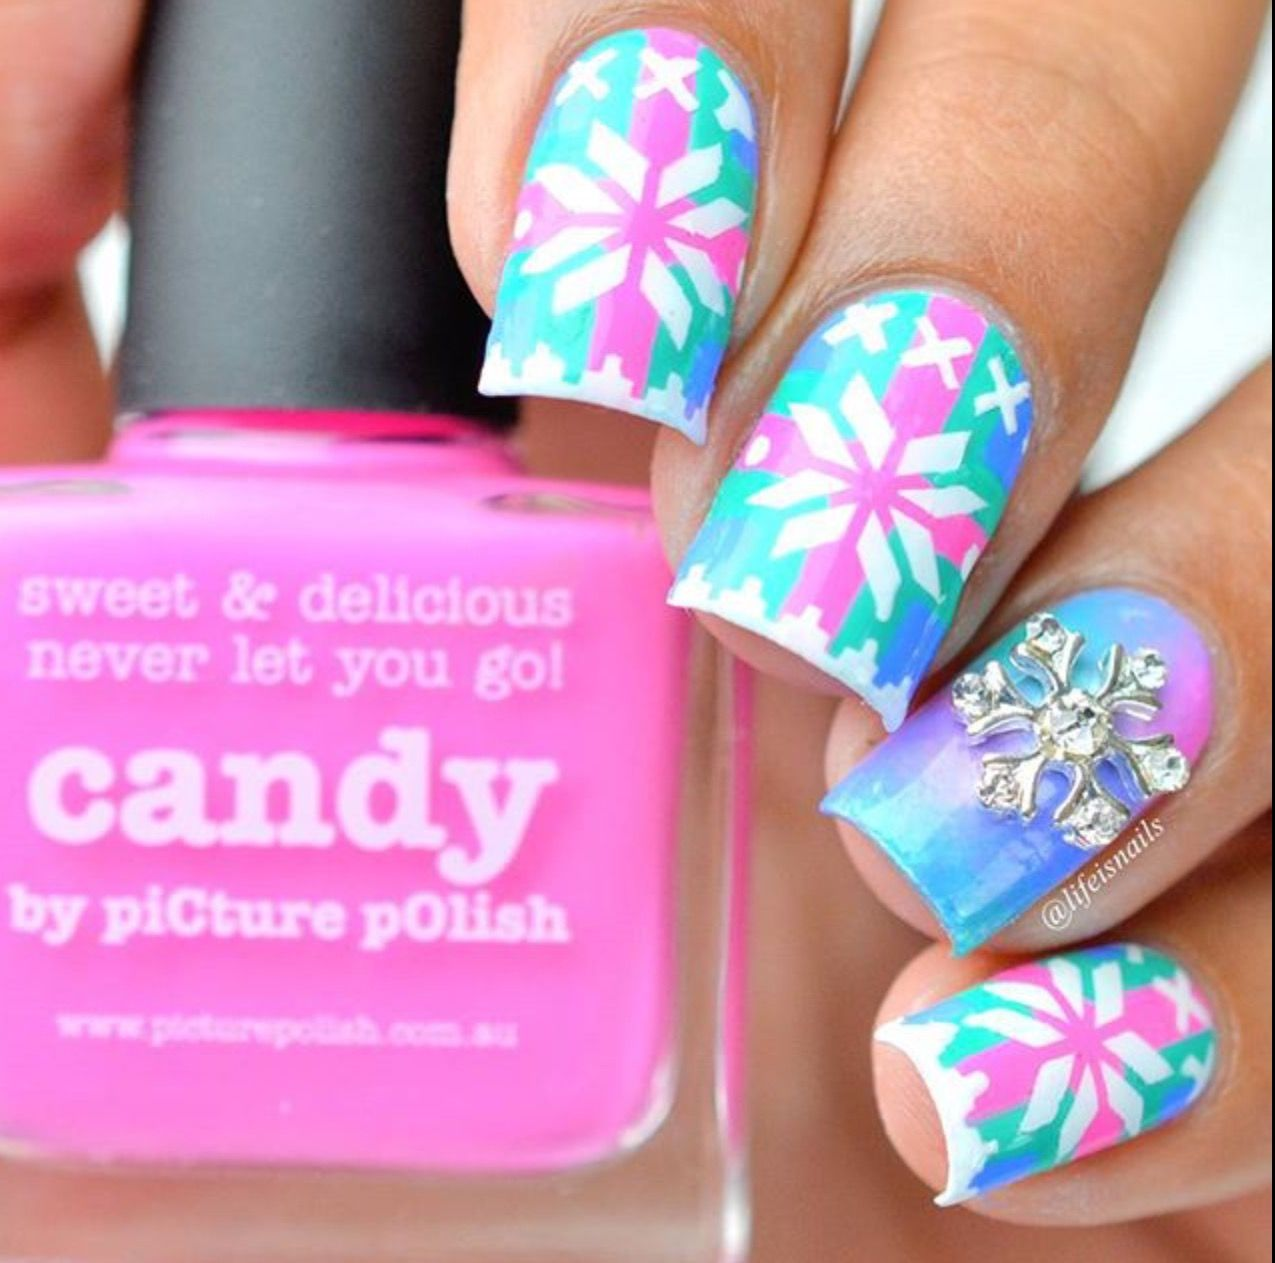 Picture Polish Fest 2017 Nail Art By Lifeisnails Features Candy Swagger Tingle